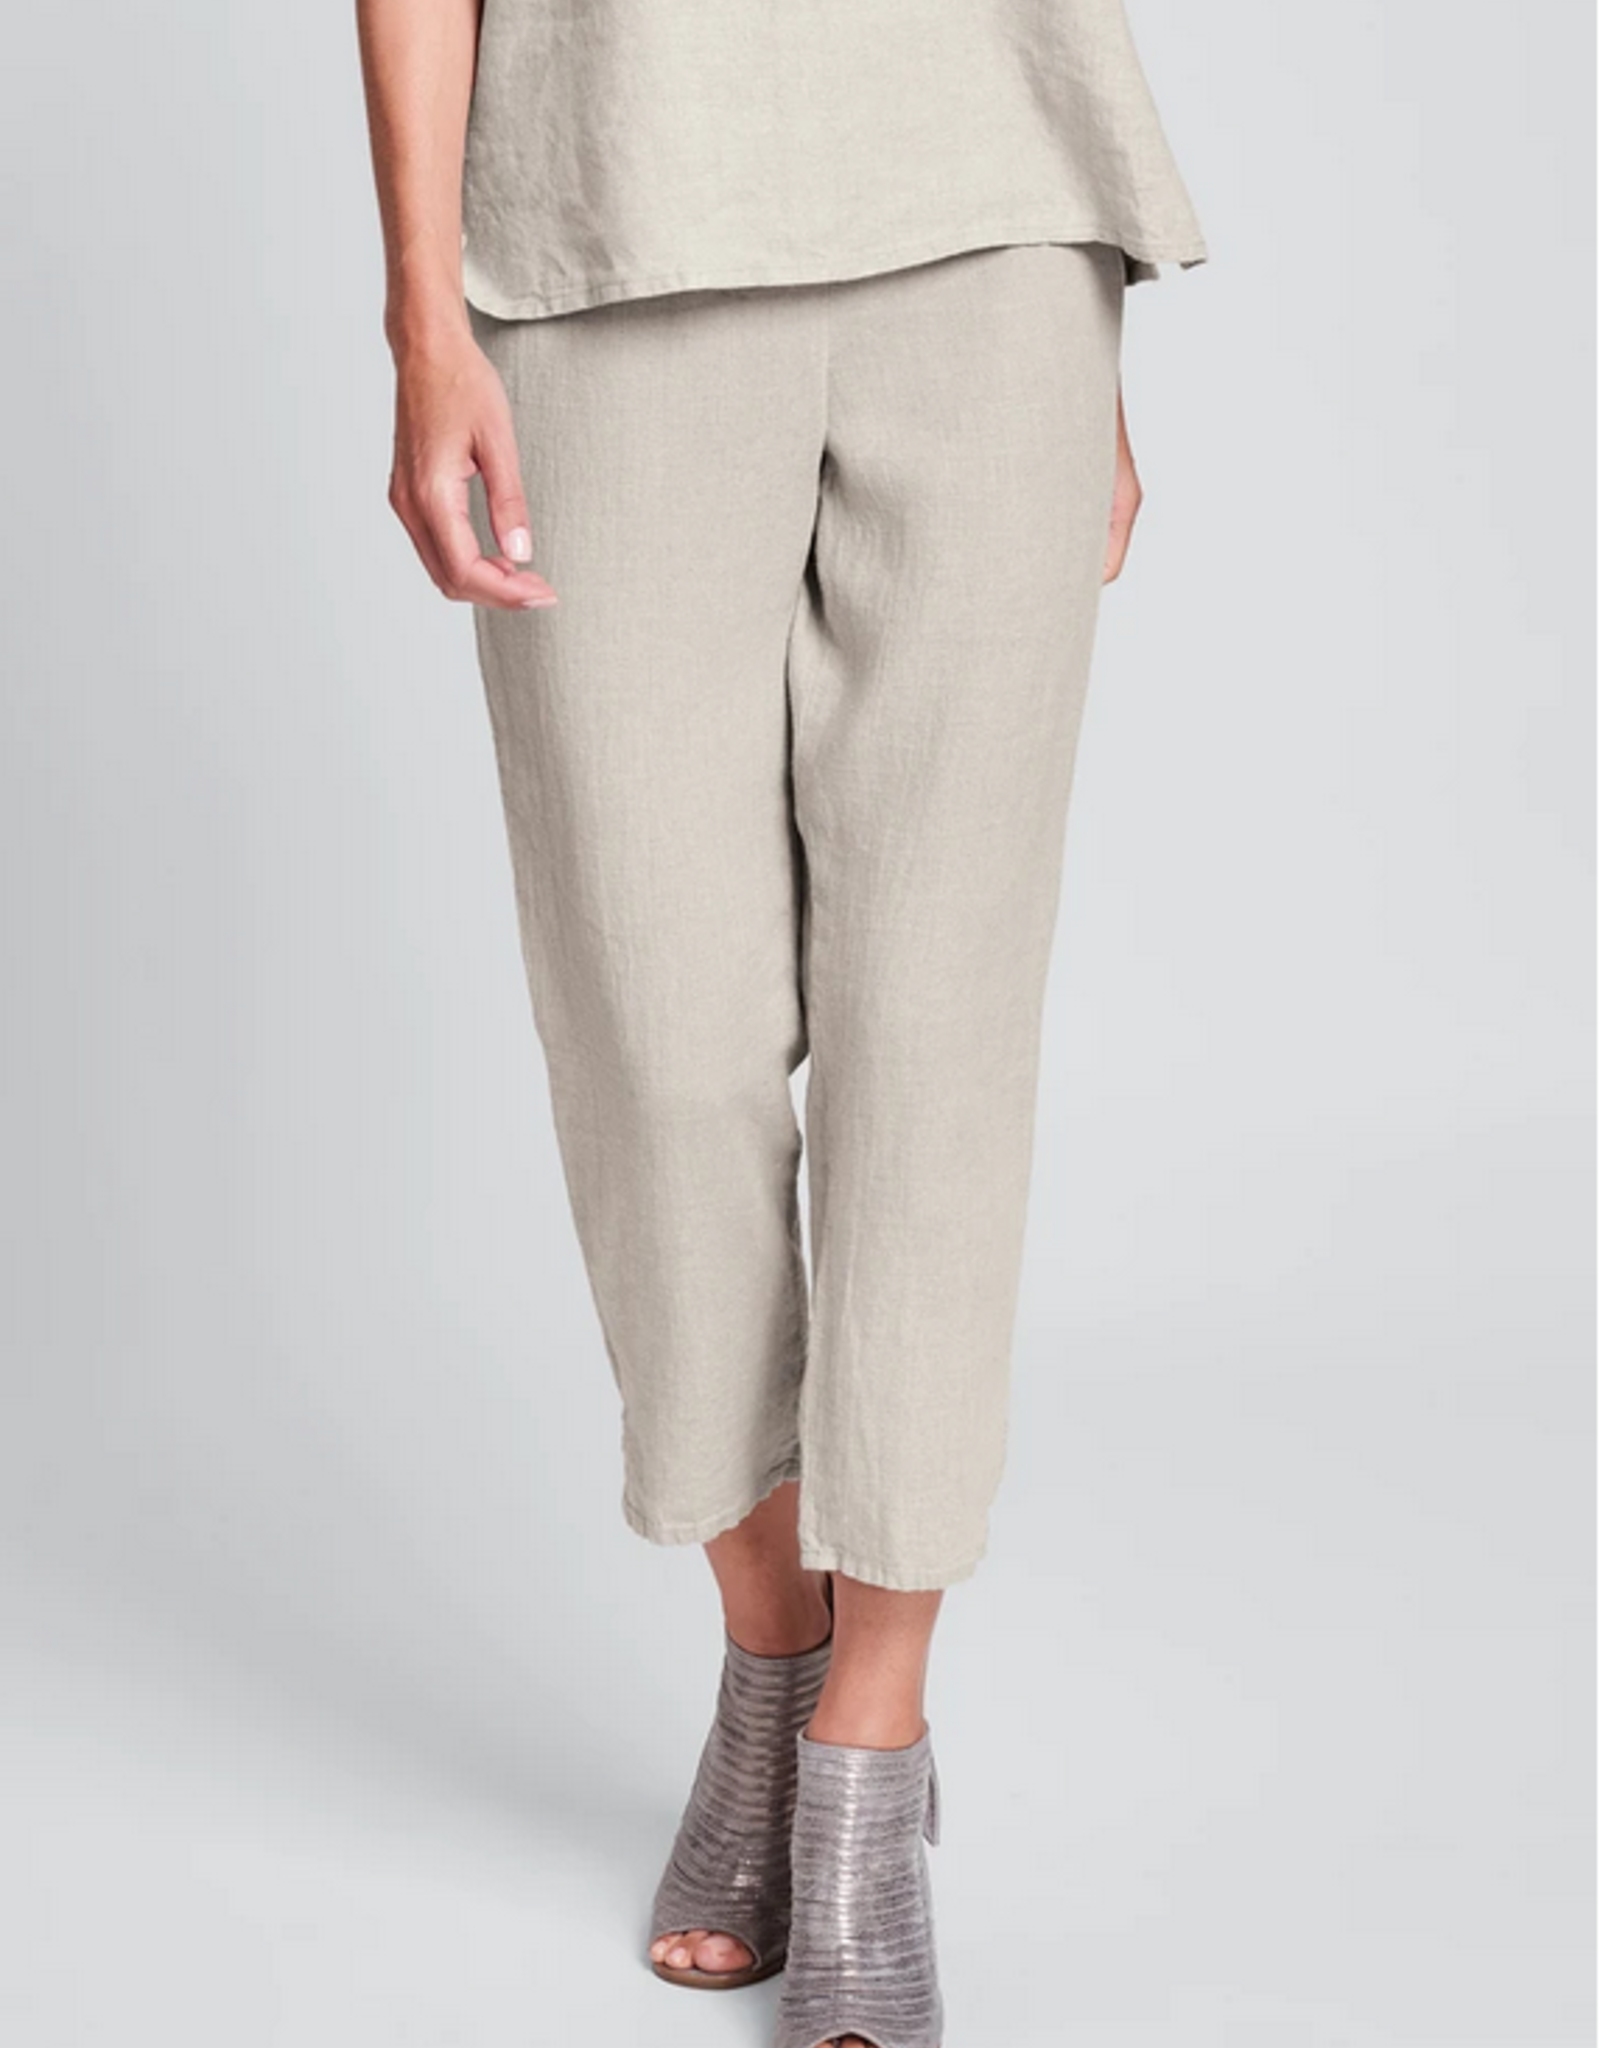 Flax Flax Linen Pocketed Ankle Pant 2 Colors